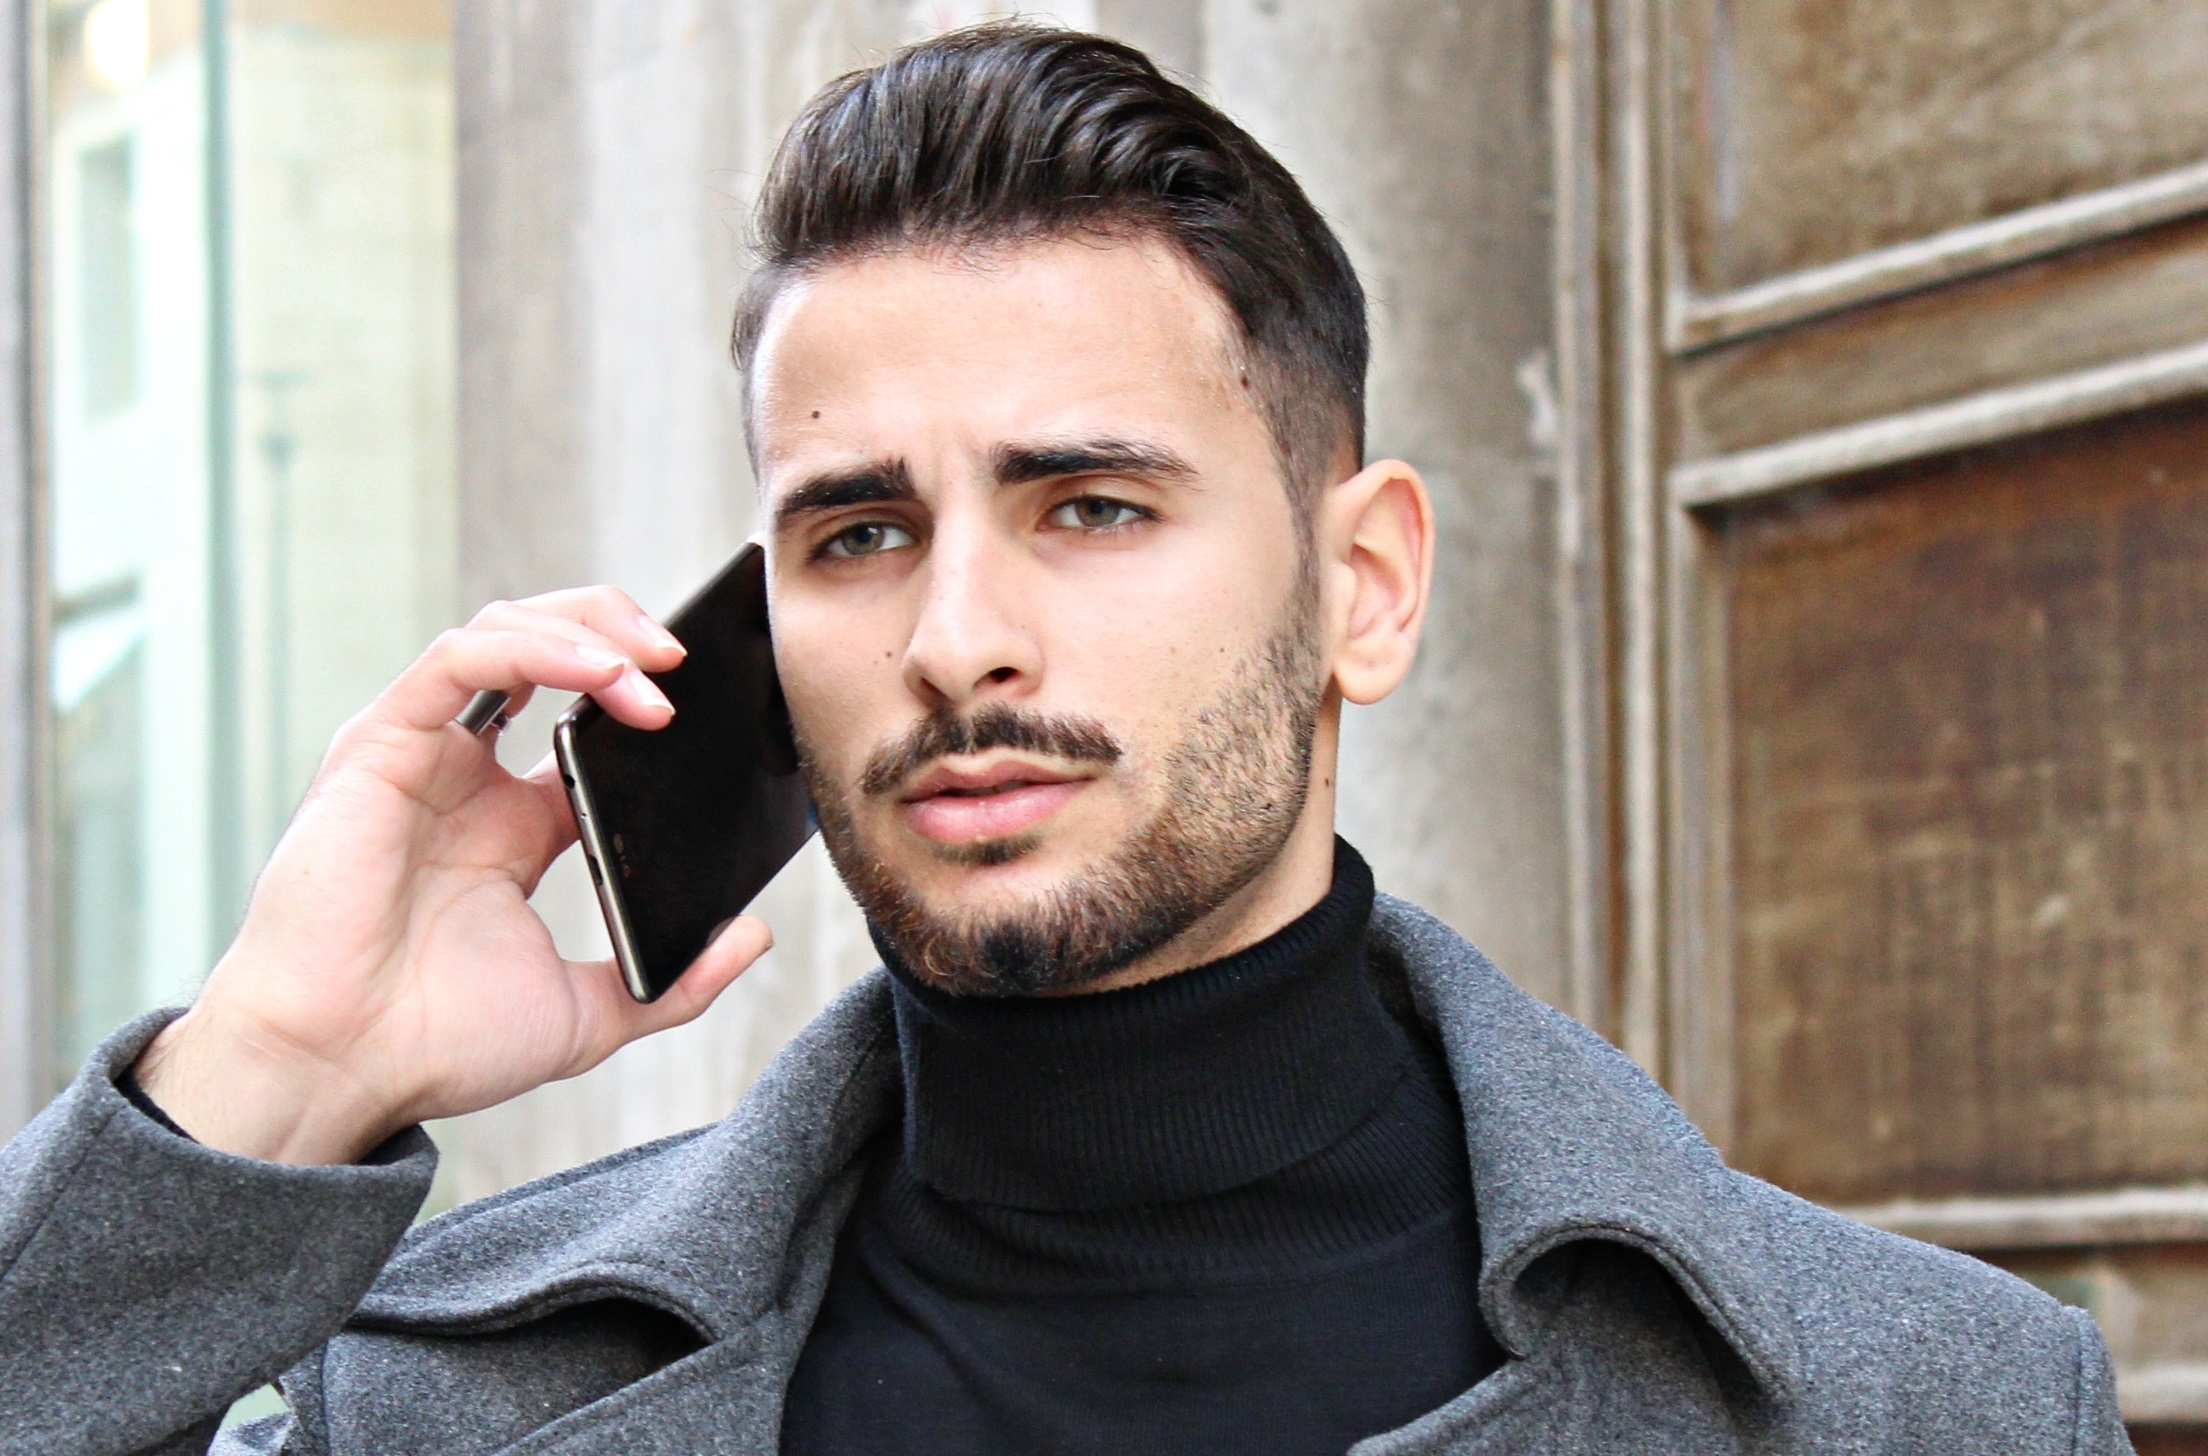 corrado firera, cfsmagazine, instagram,Beard Styles For Men - Best Looks Of The Moment - Trends Of 2019